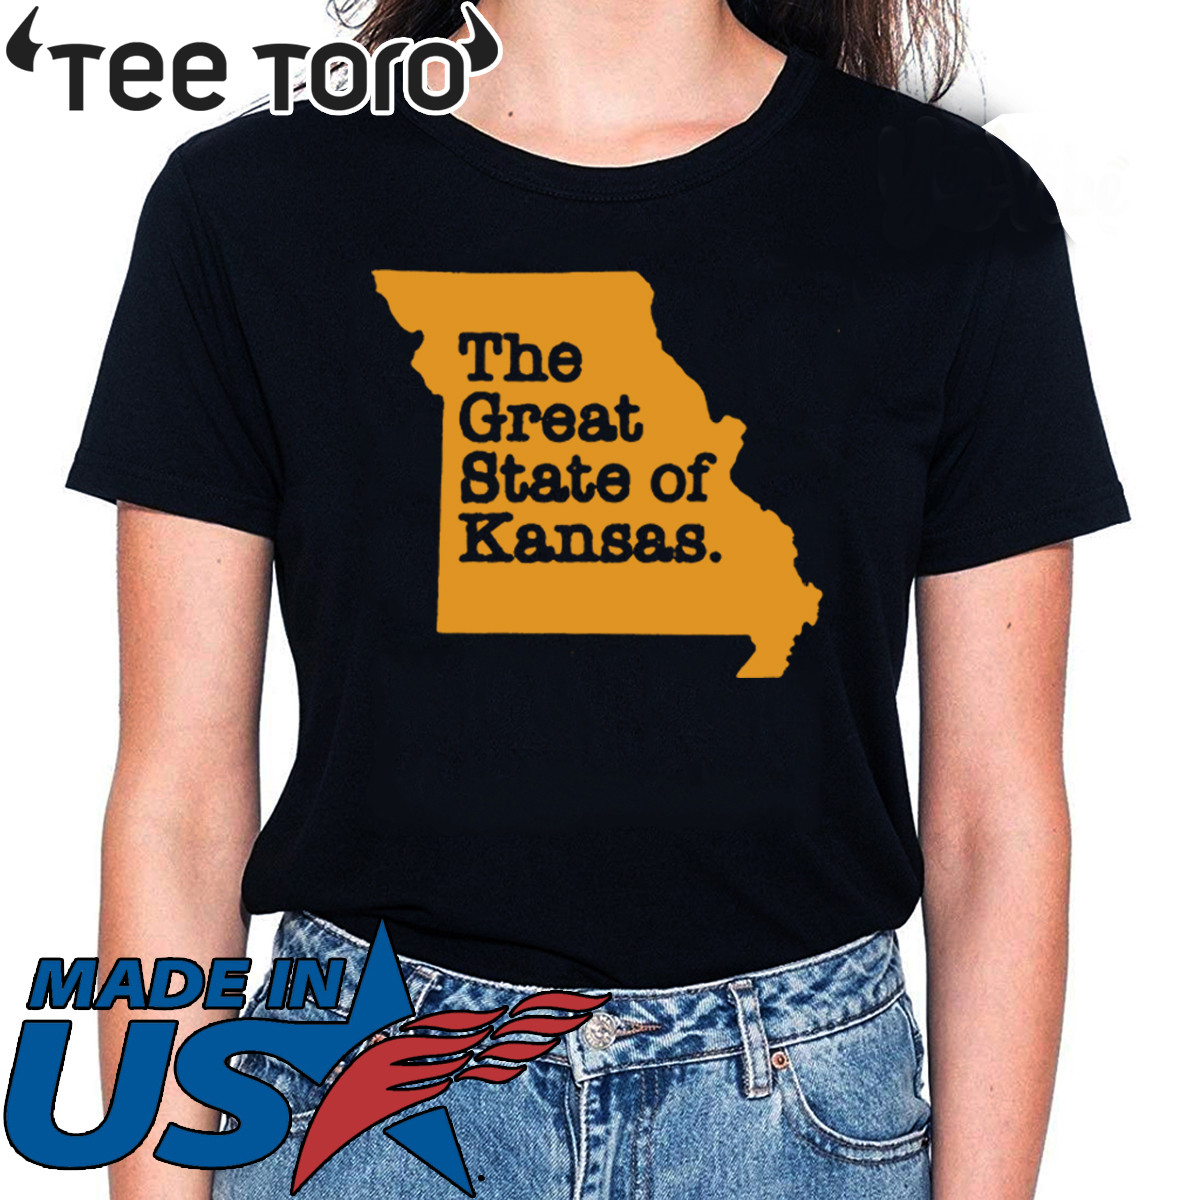 The Great State Of Kansas T-Shirt Limited Edition